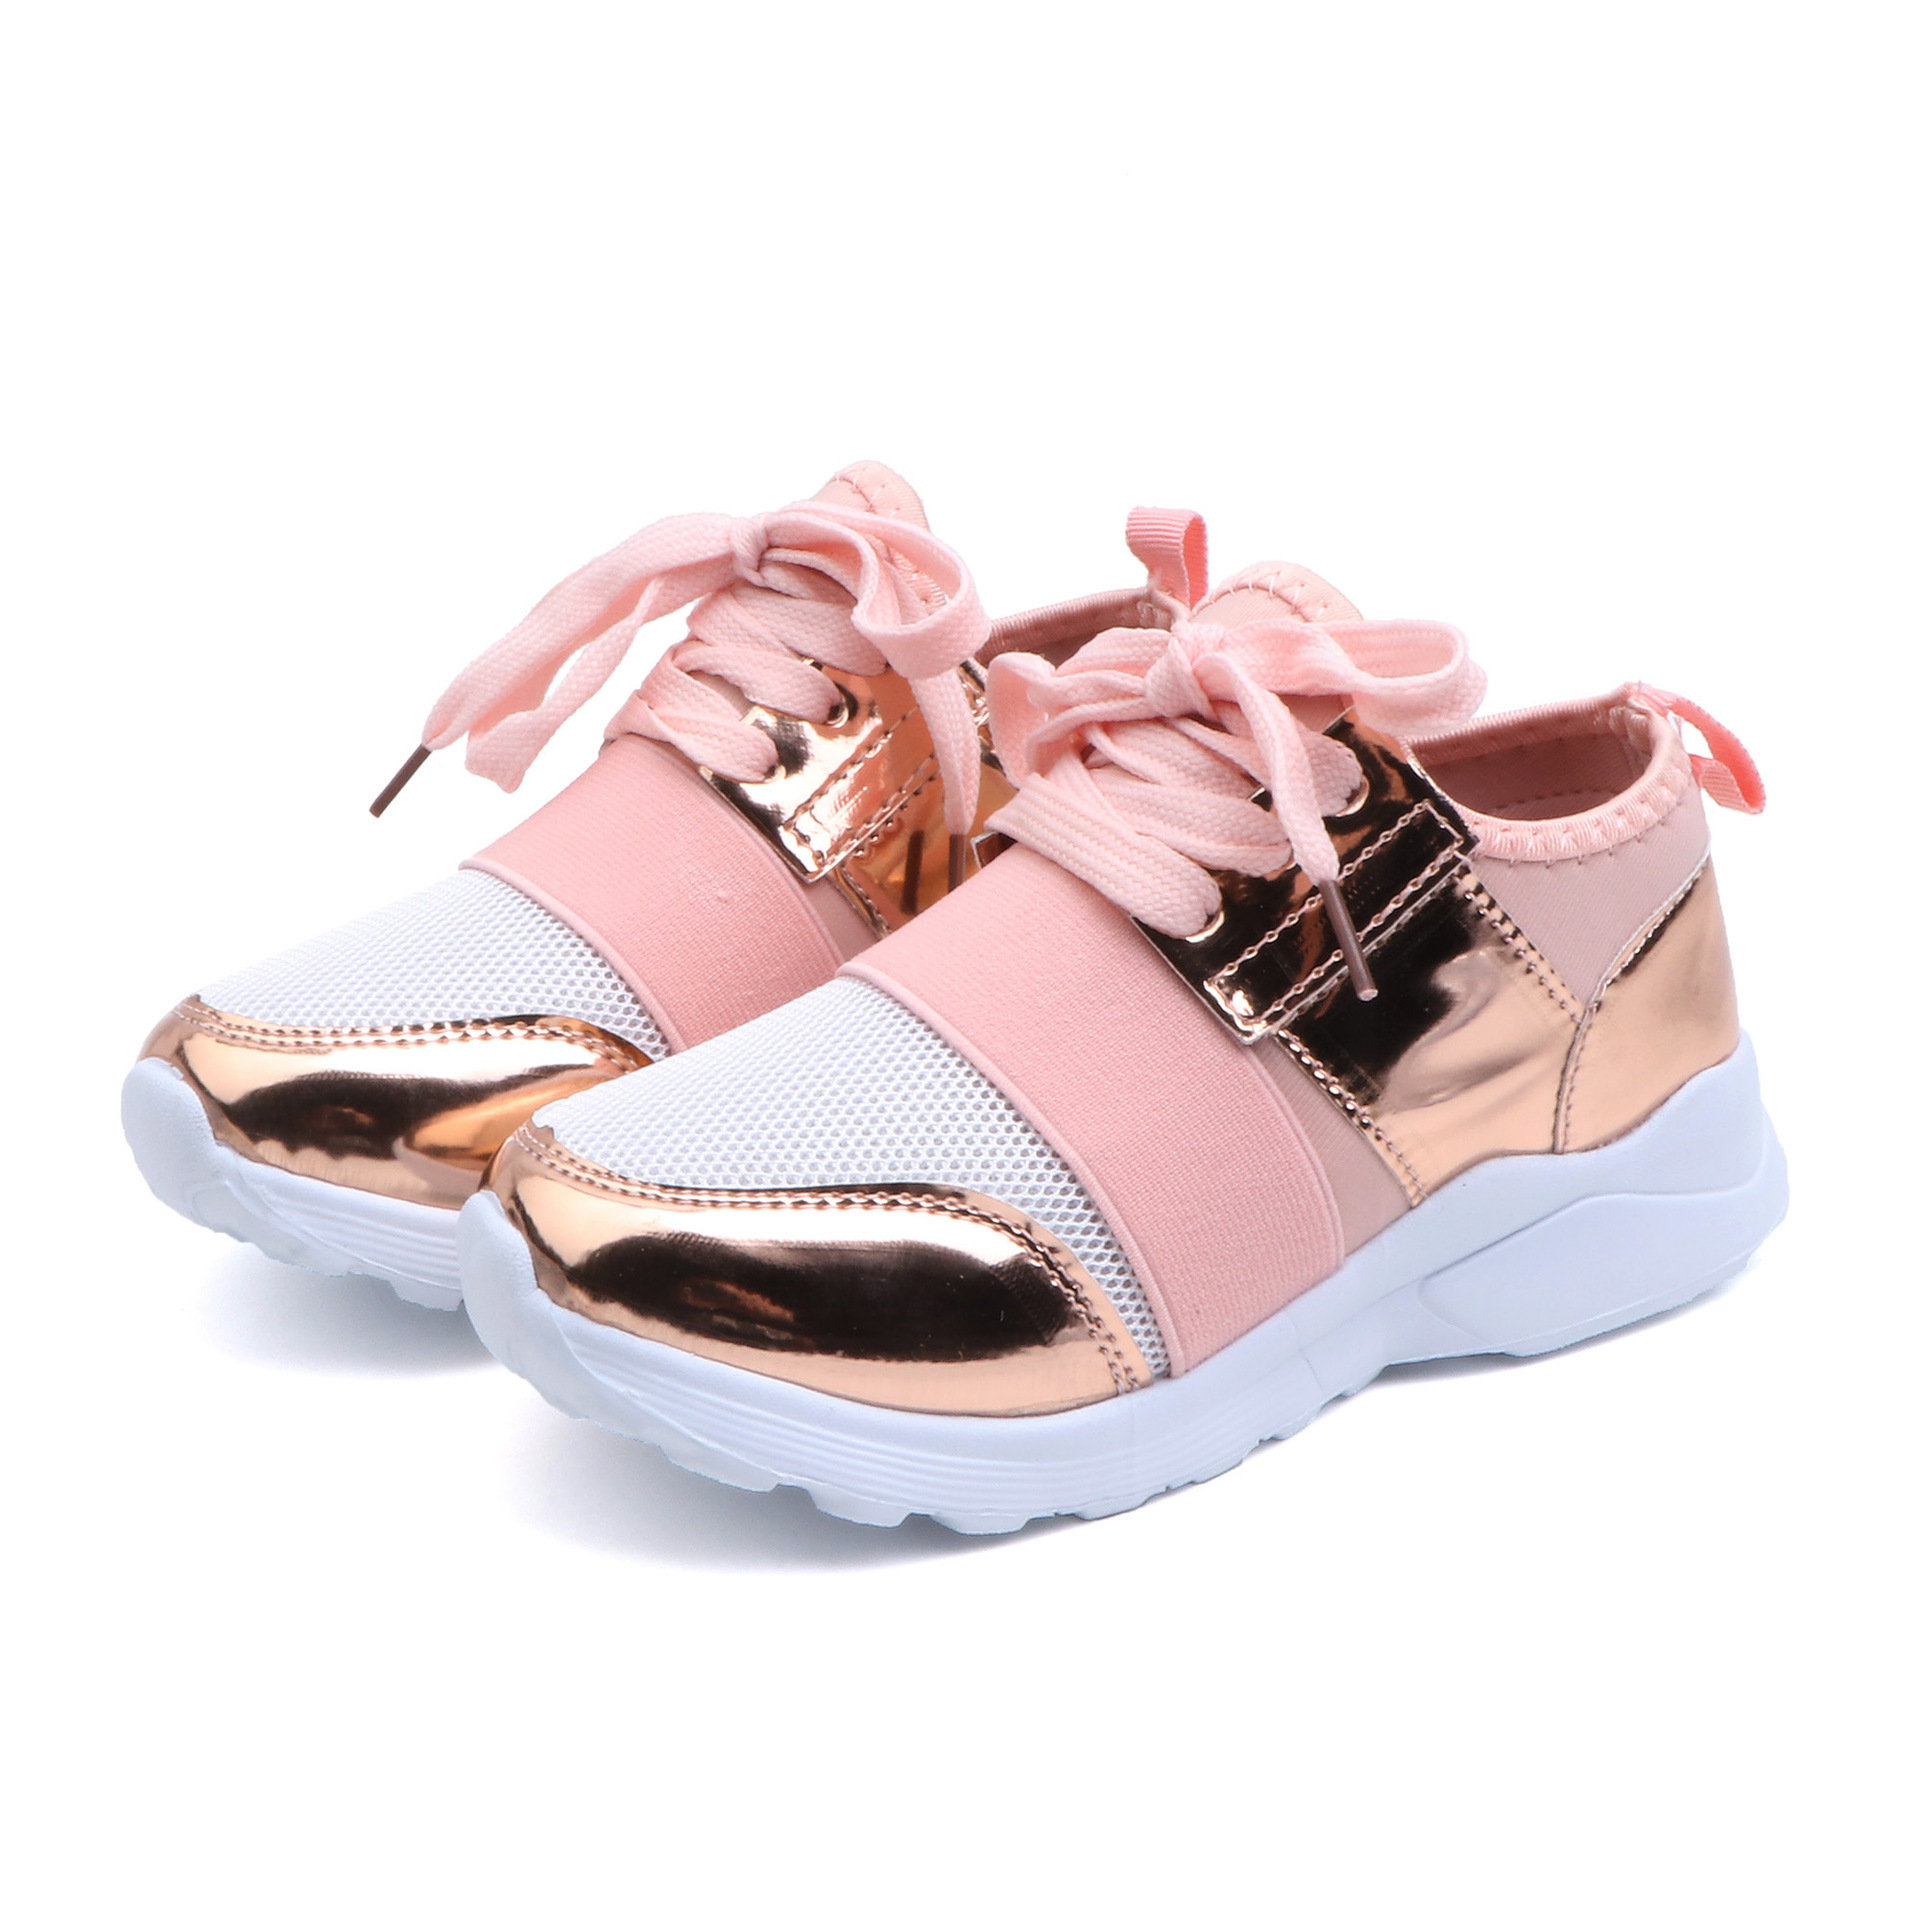 Girls Mesh PU Breathable Sneakers Toddler Little Kid Casual Fashion Trainers Children Sports Shoes 4 5 6 7 8 9 10 11 12 Year Old